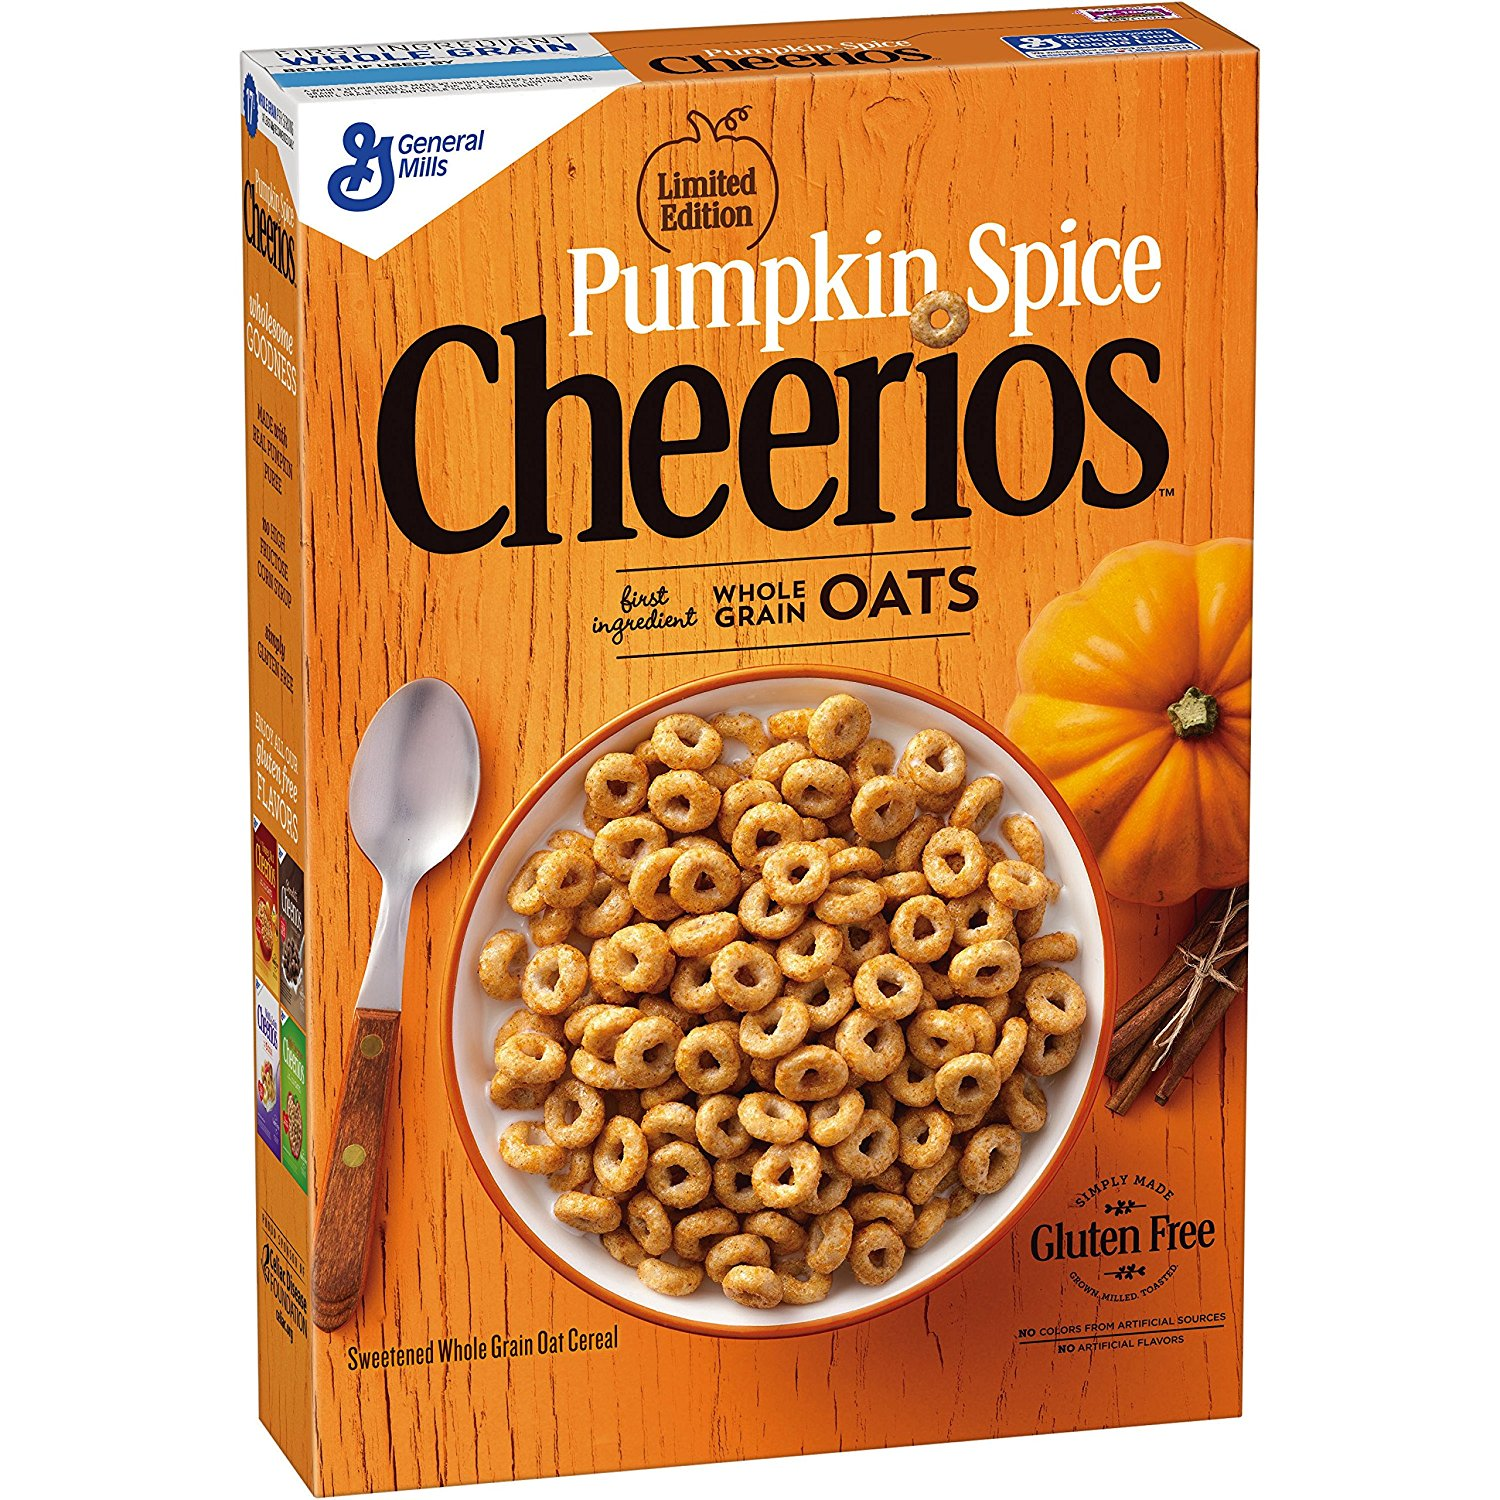 Pumpkin Spice Cheerios, $3 (Image courtesy of General Mills)